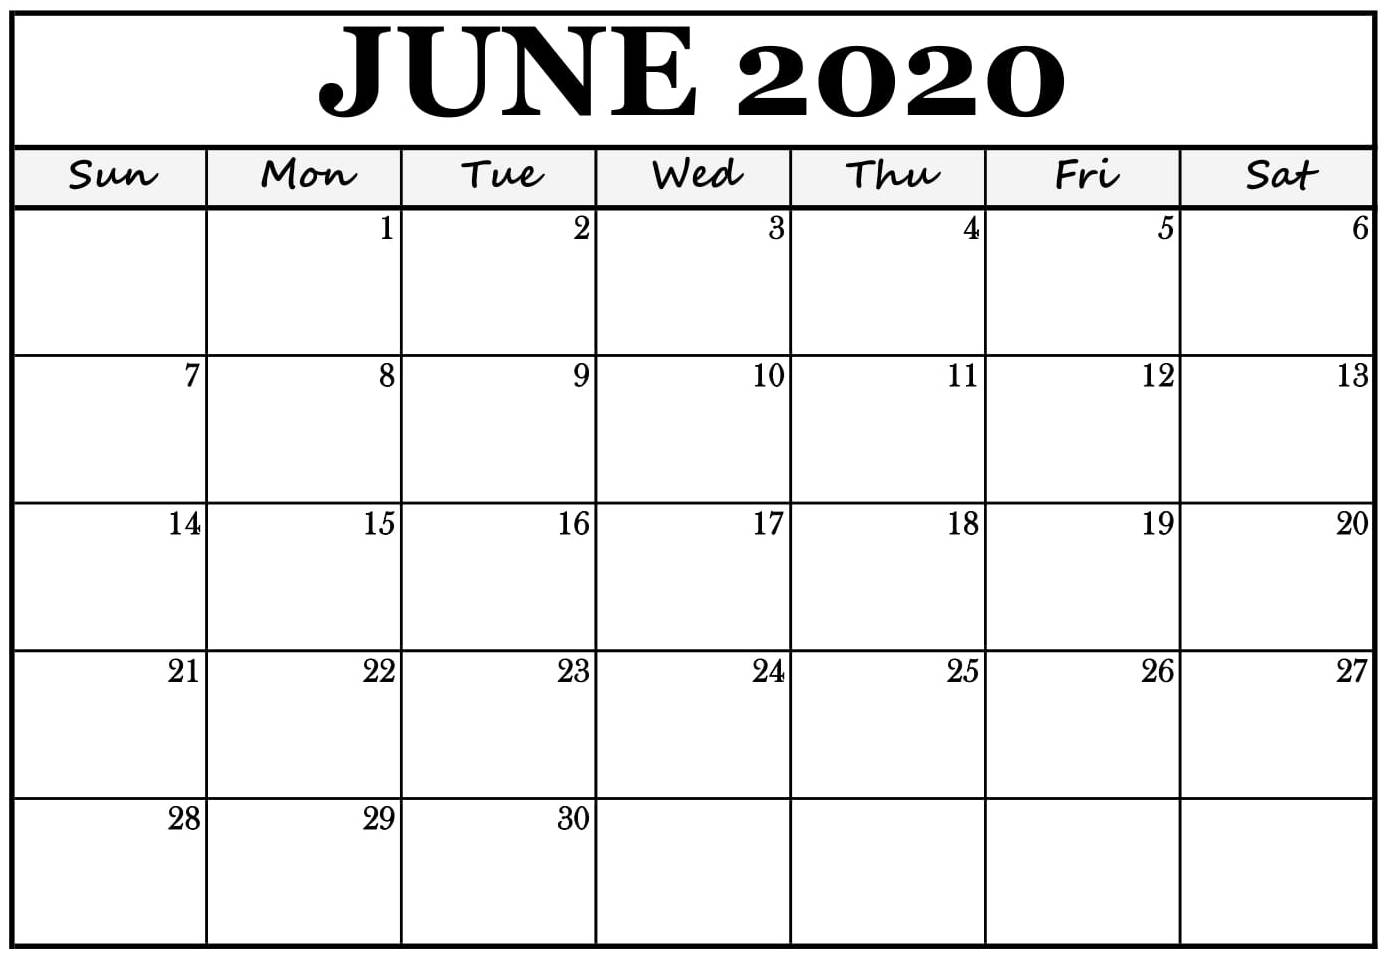 Print Calendar For June 2020 Daily Planner Template - Web